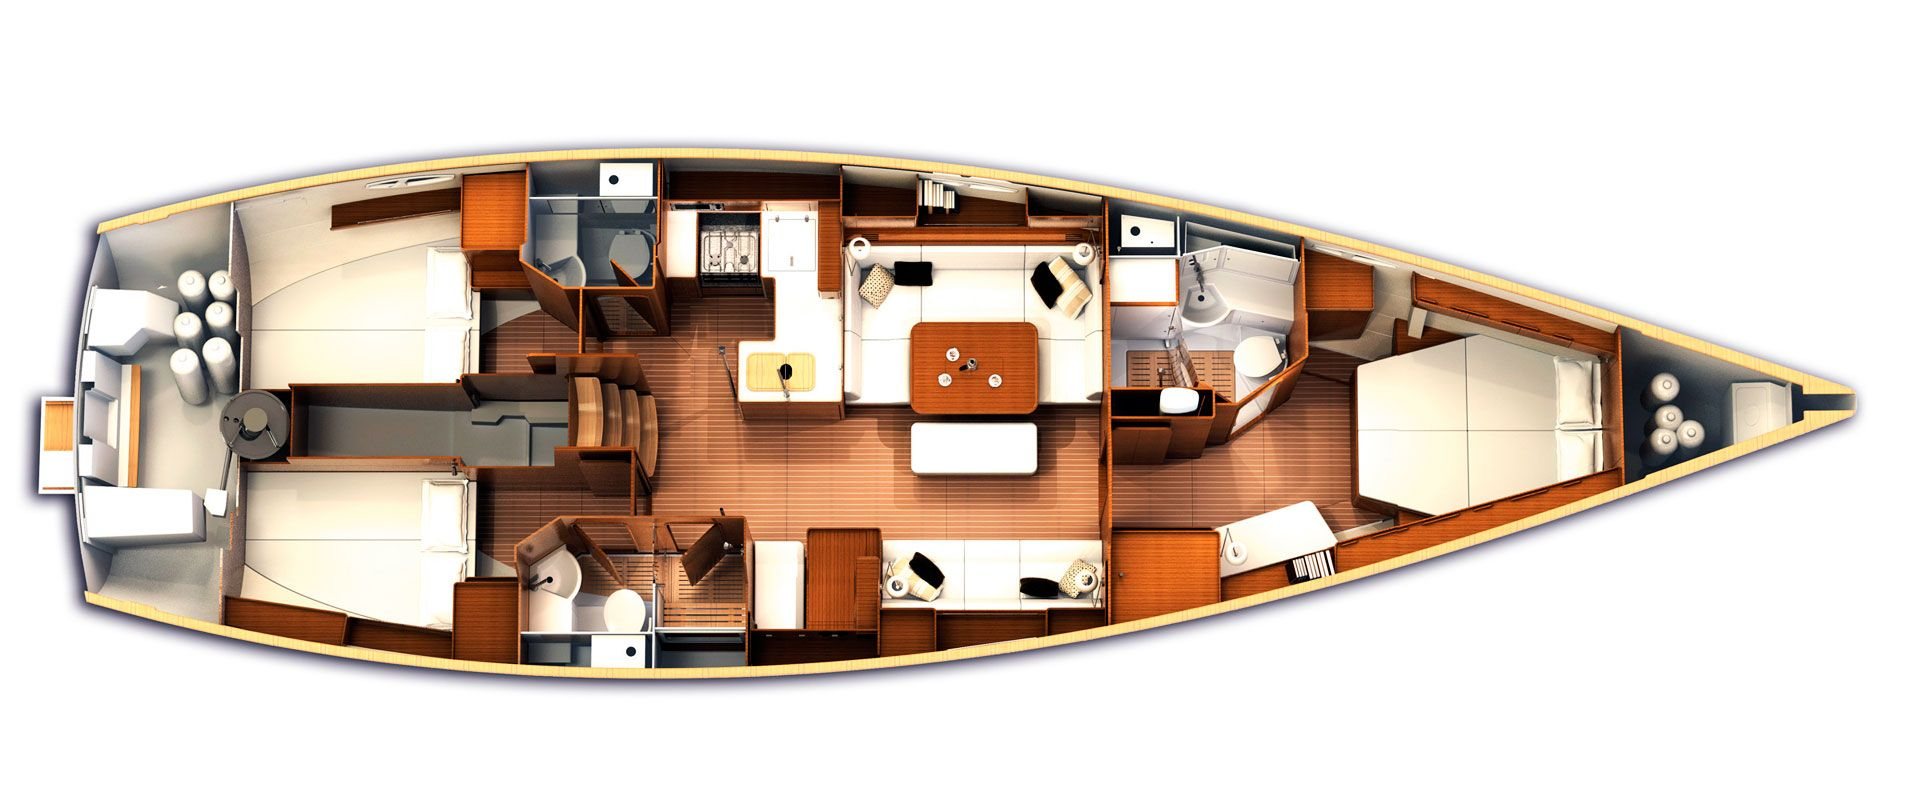 164522192612519772 on Amsterdam Houseboat Rental